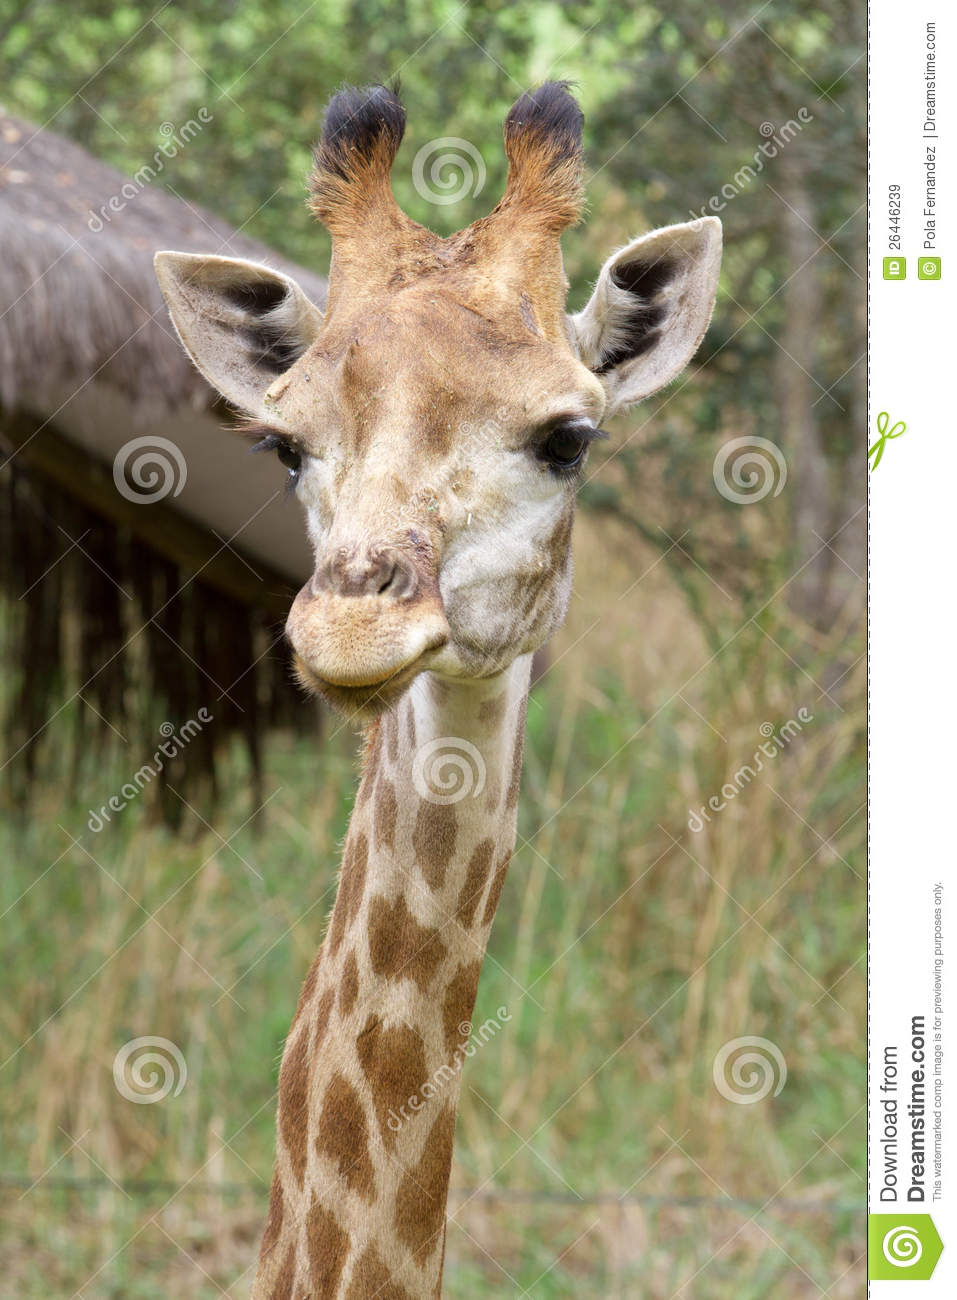 Giraffe head close up - photo#17